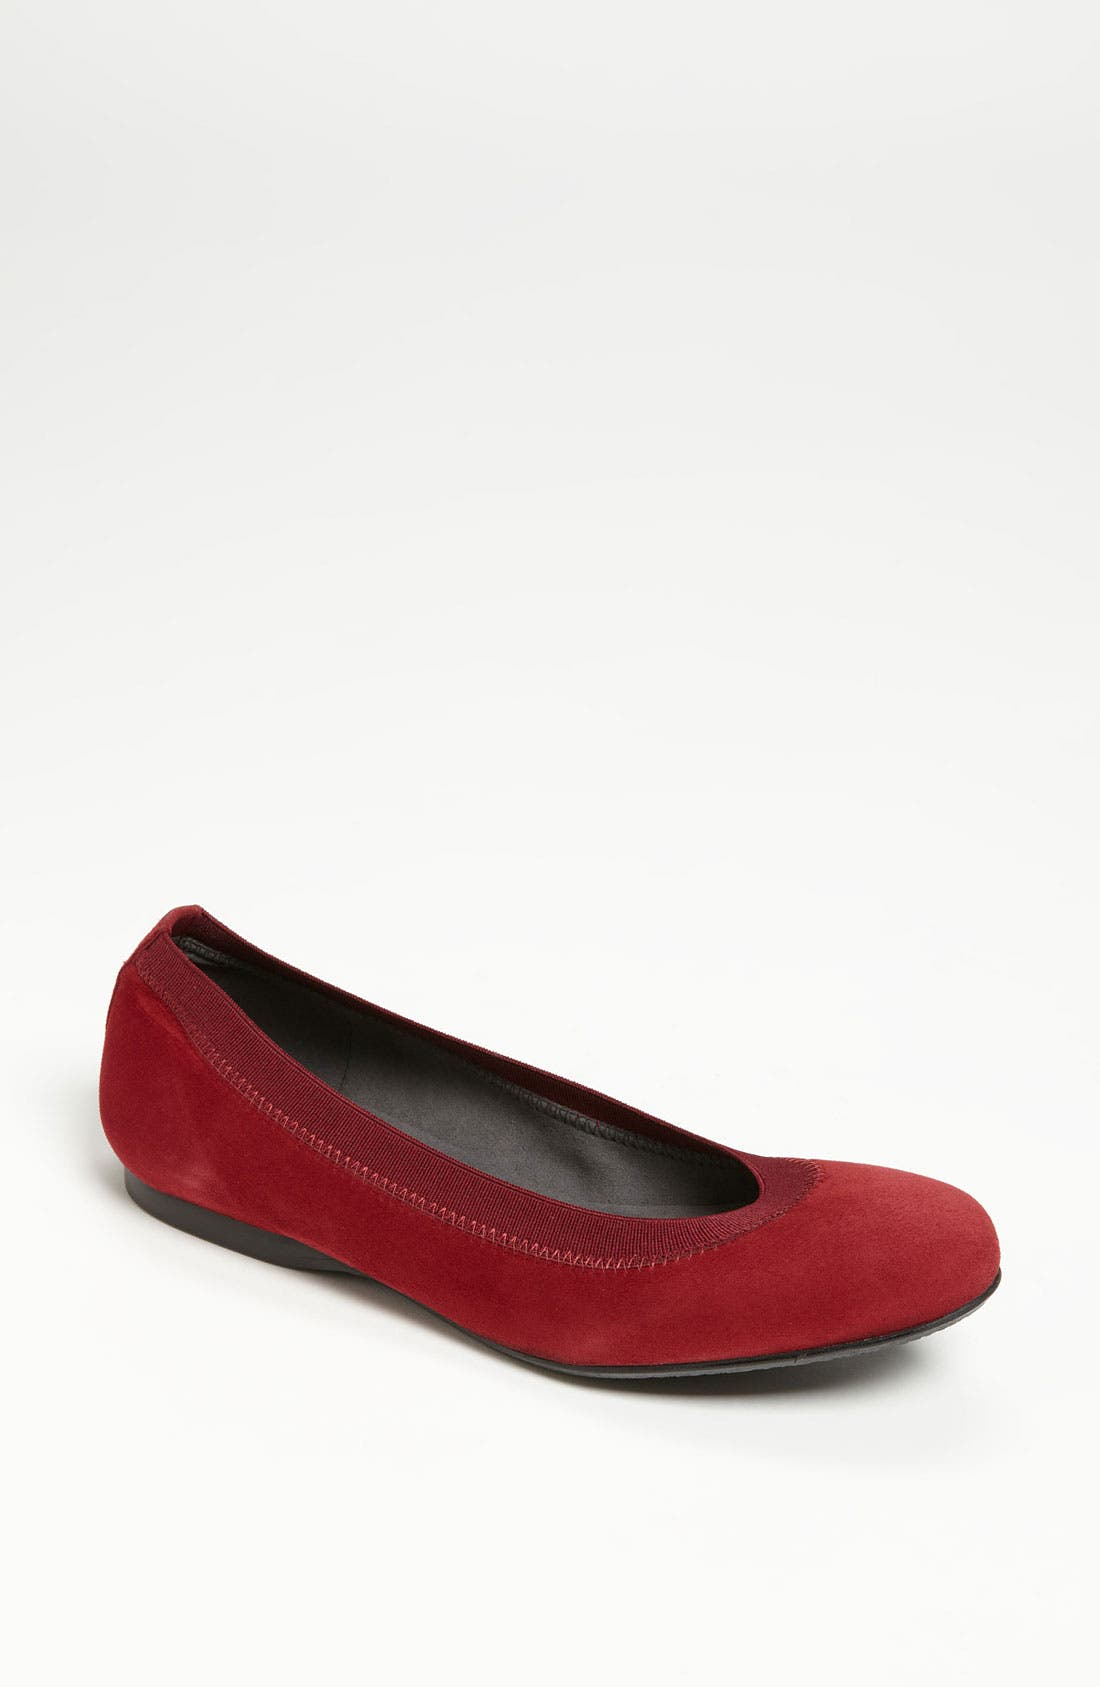 Alternate Image 1 Selected - Stuart Weitzman 'Adaptable' Flat (Nordstrom Exclusive)